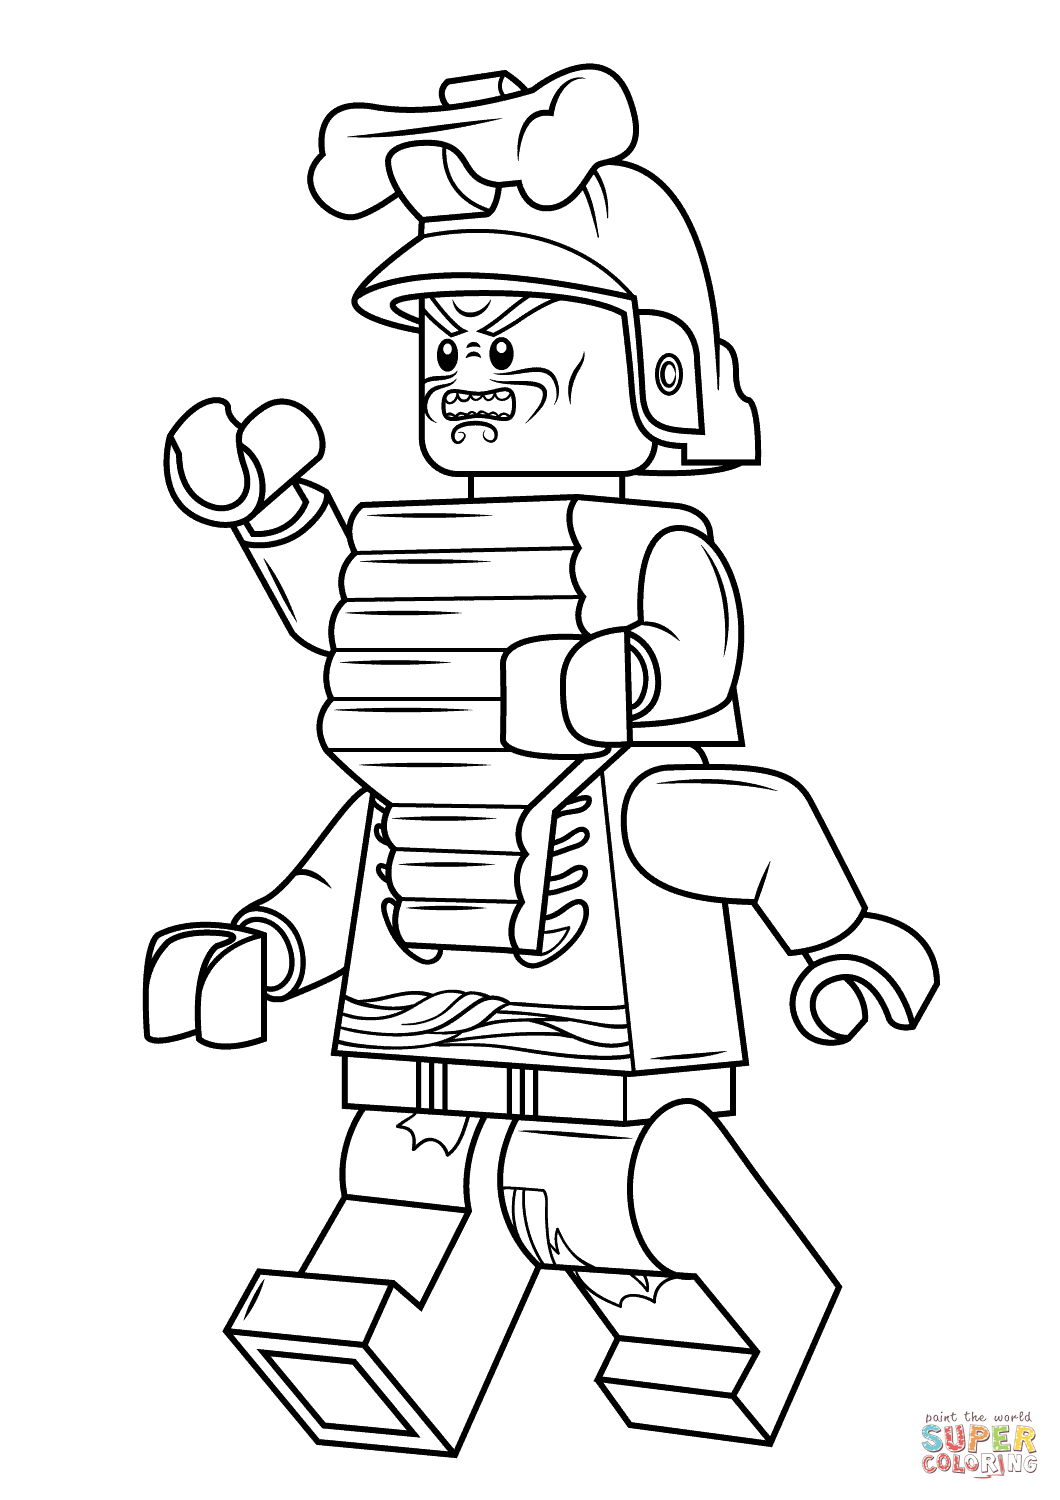 Lego Ninjago Lord Garmadon  Super Coloring  Lego coloring pages